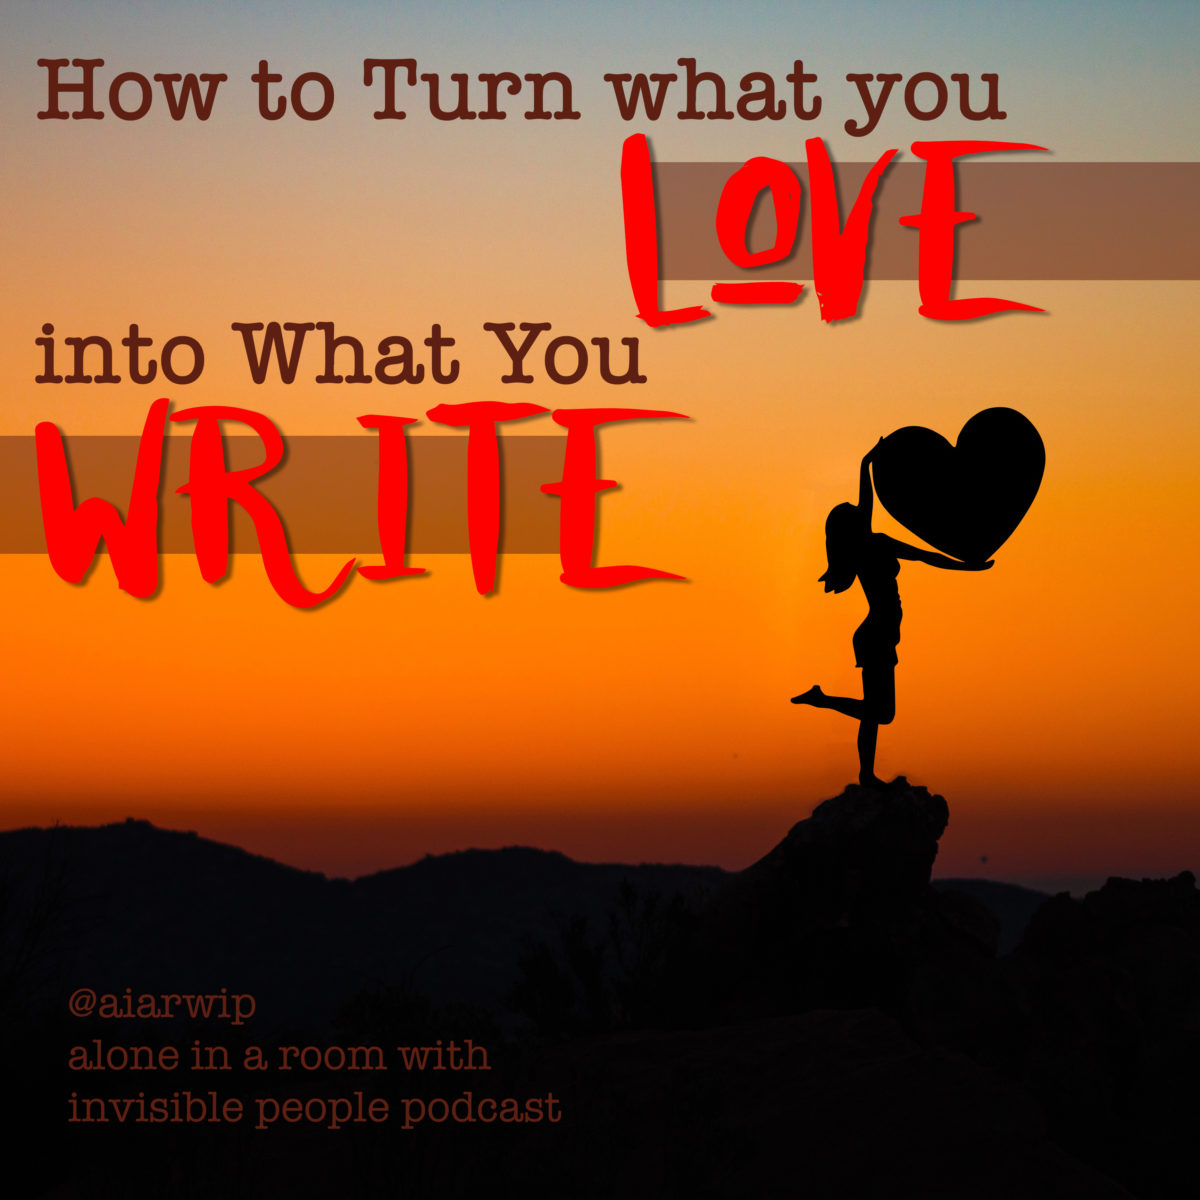 Episode 79: How to Turn What You Love into What You Write